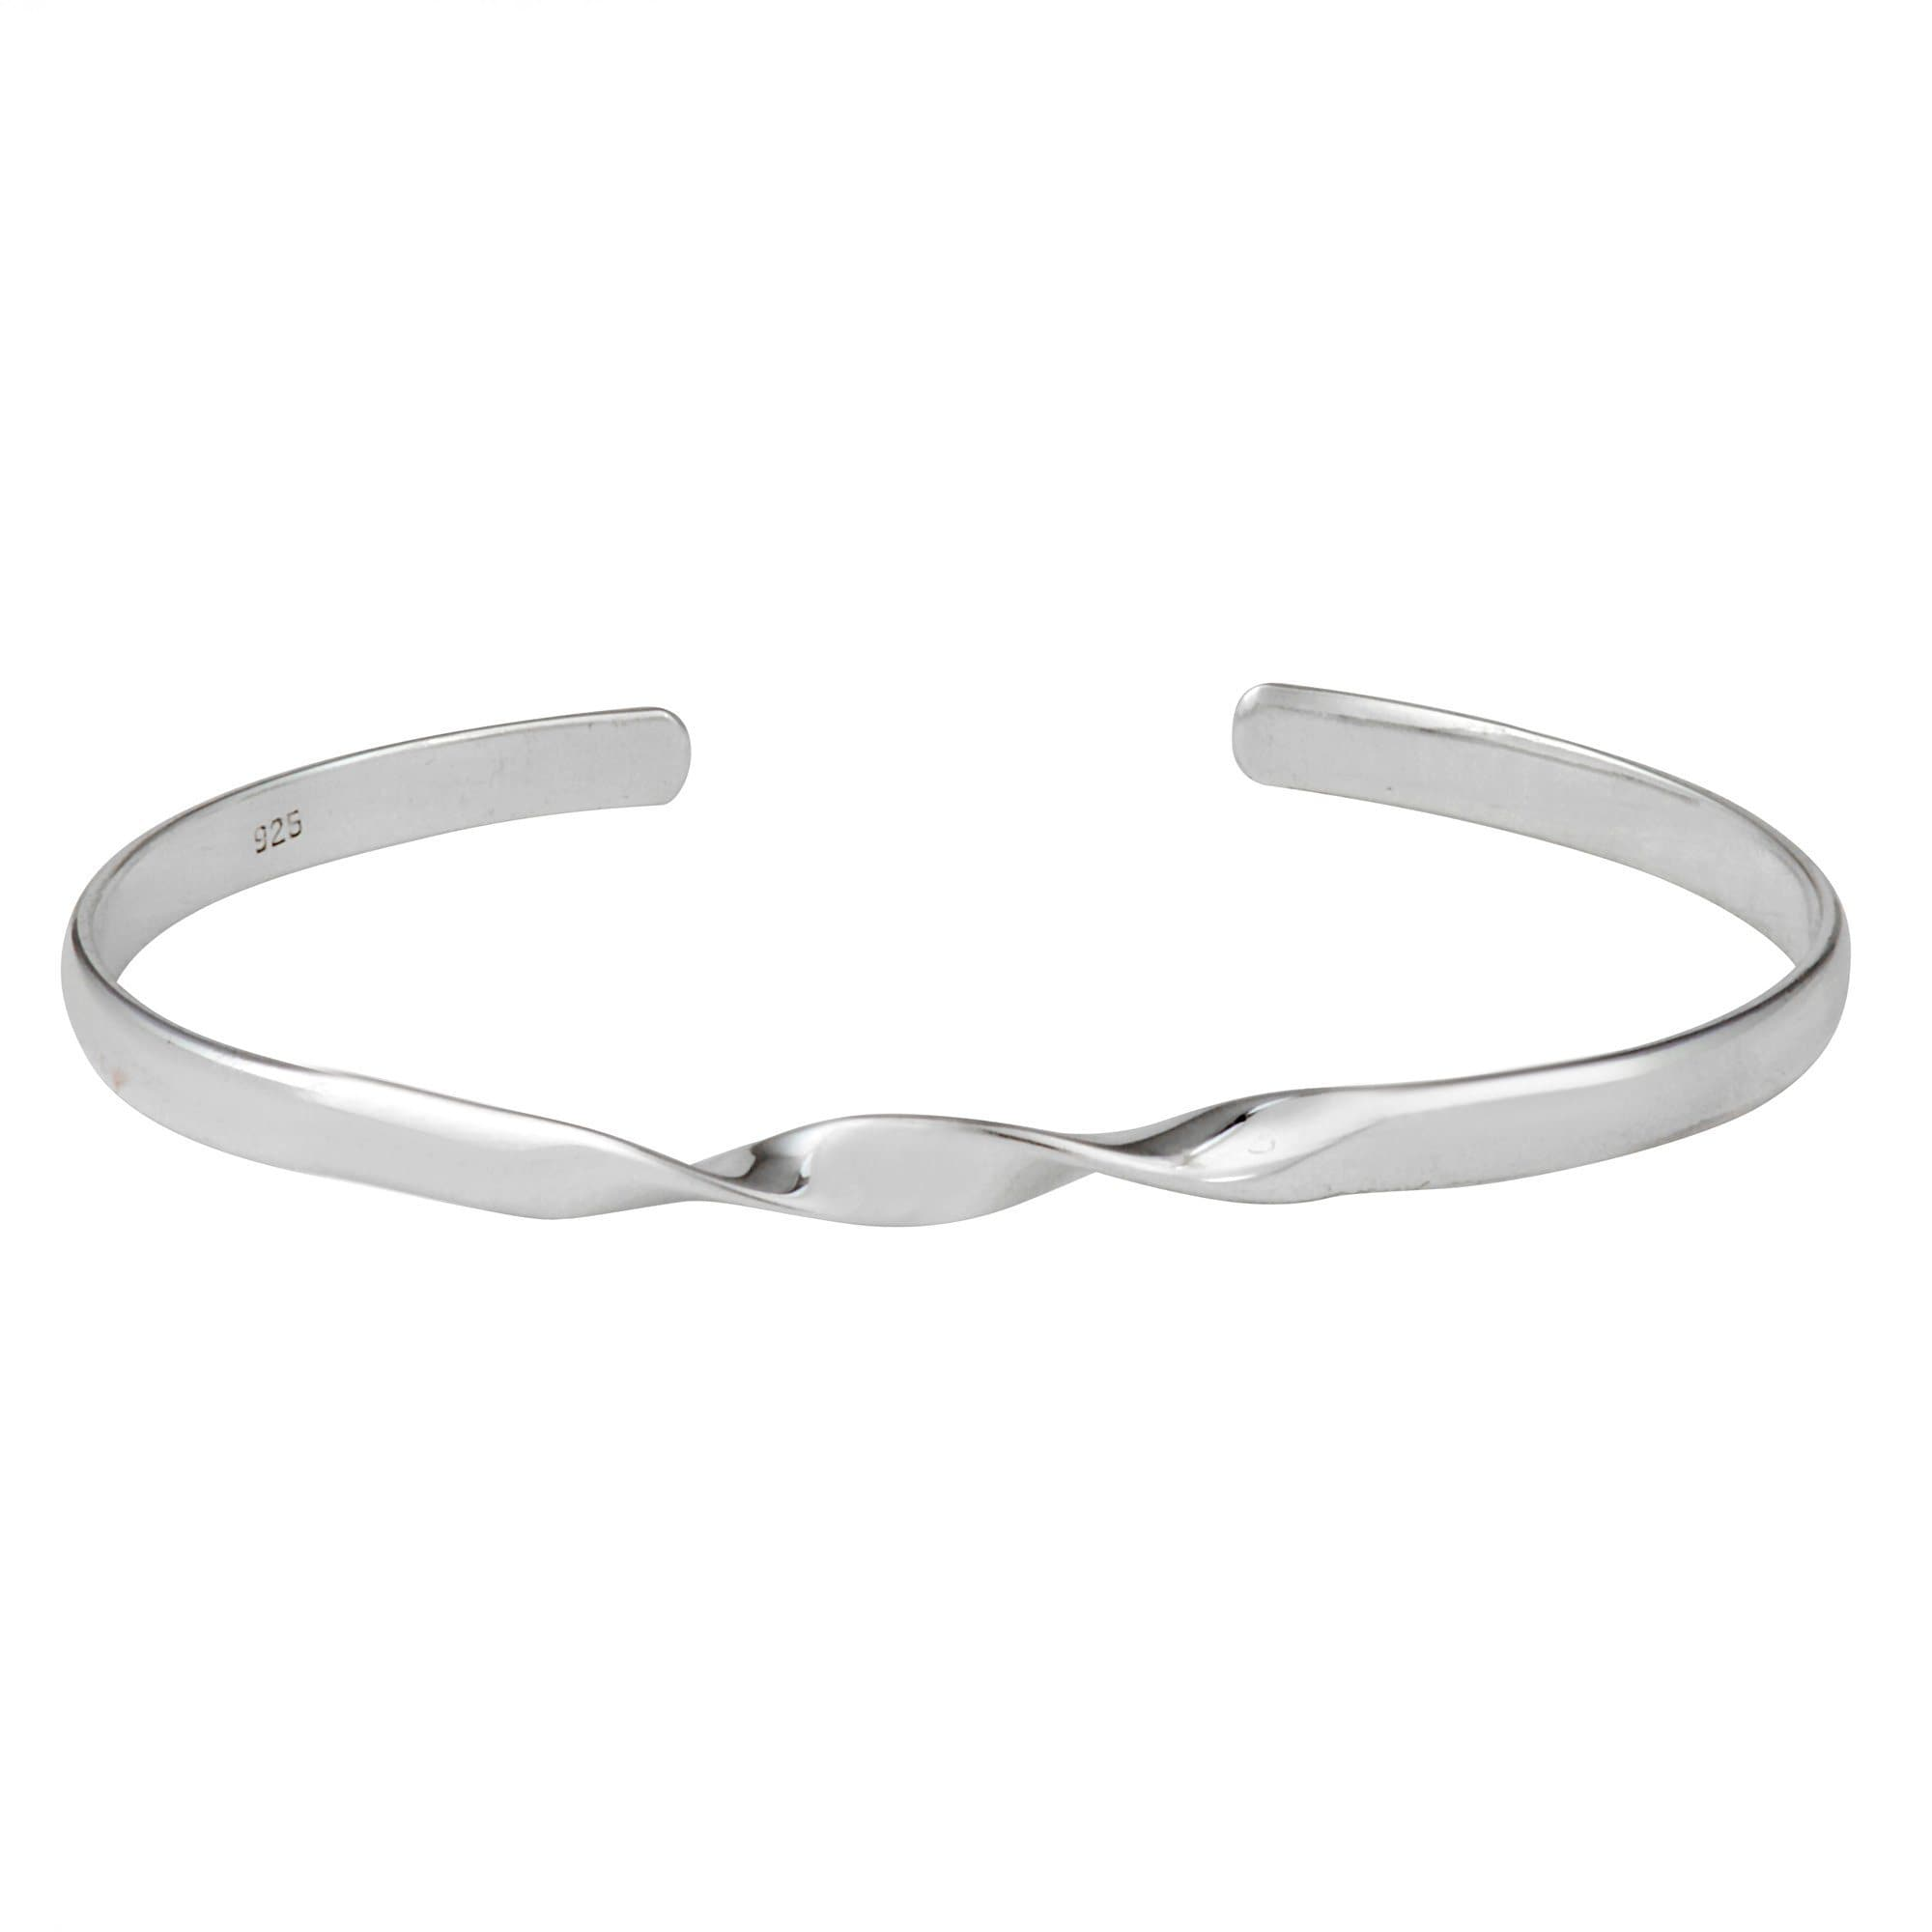 hook heart products sterling bracelet silverly clasp pressure bangle polished bangles womens simple bracelets silver plain lasso